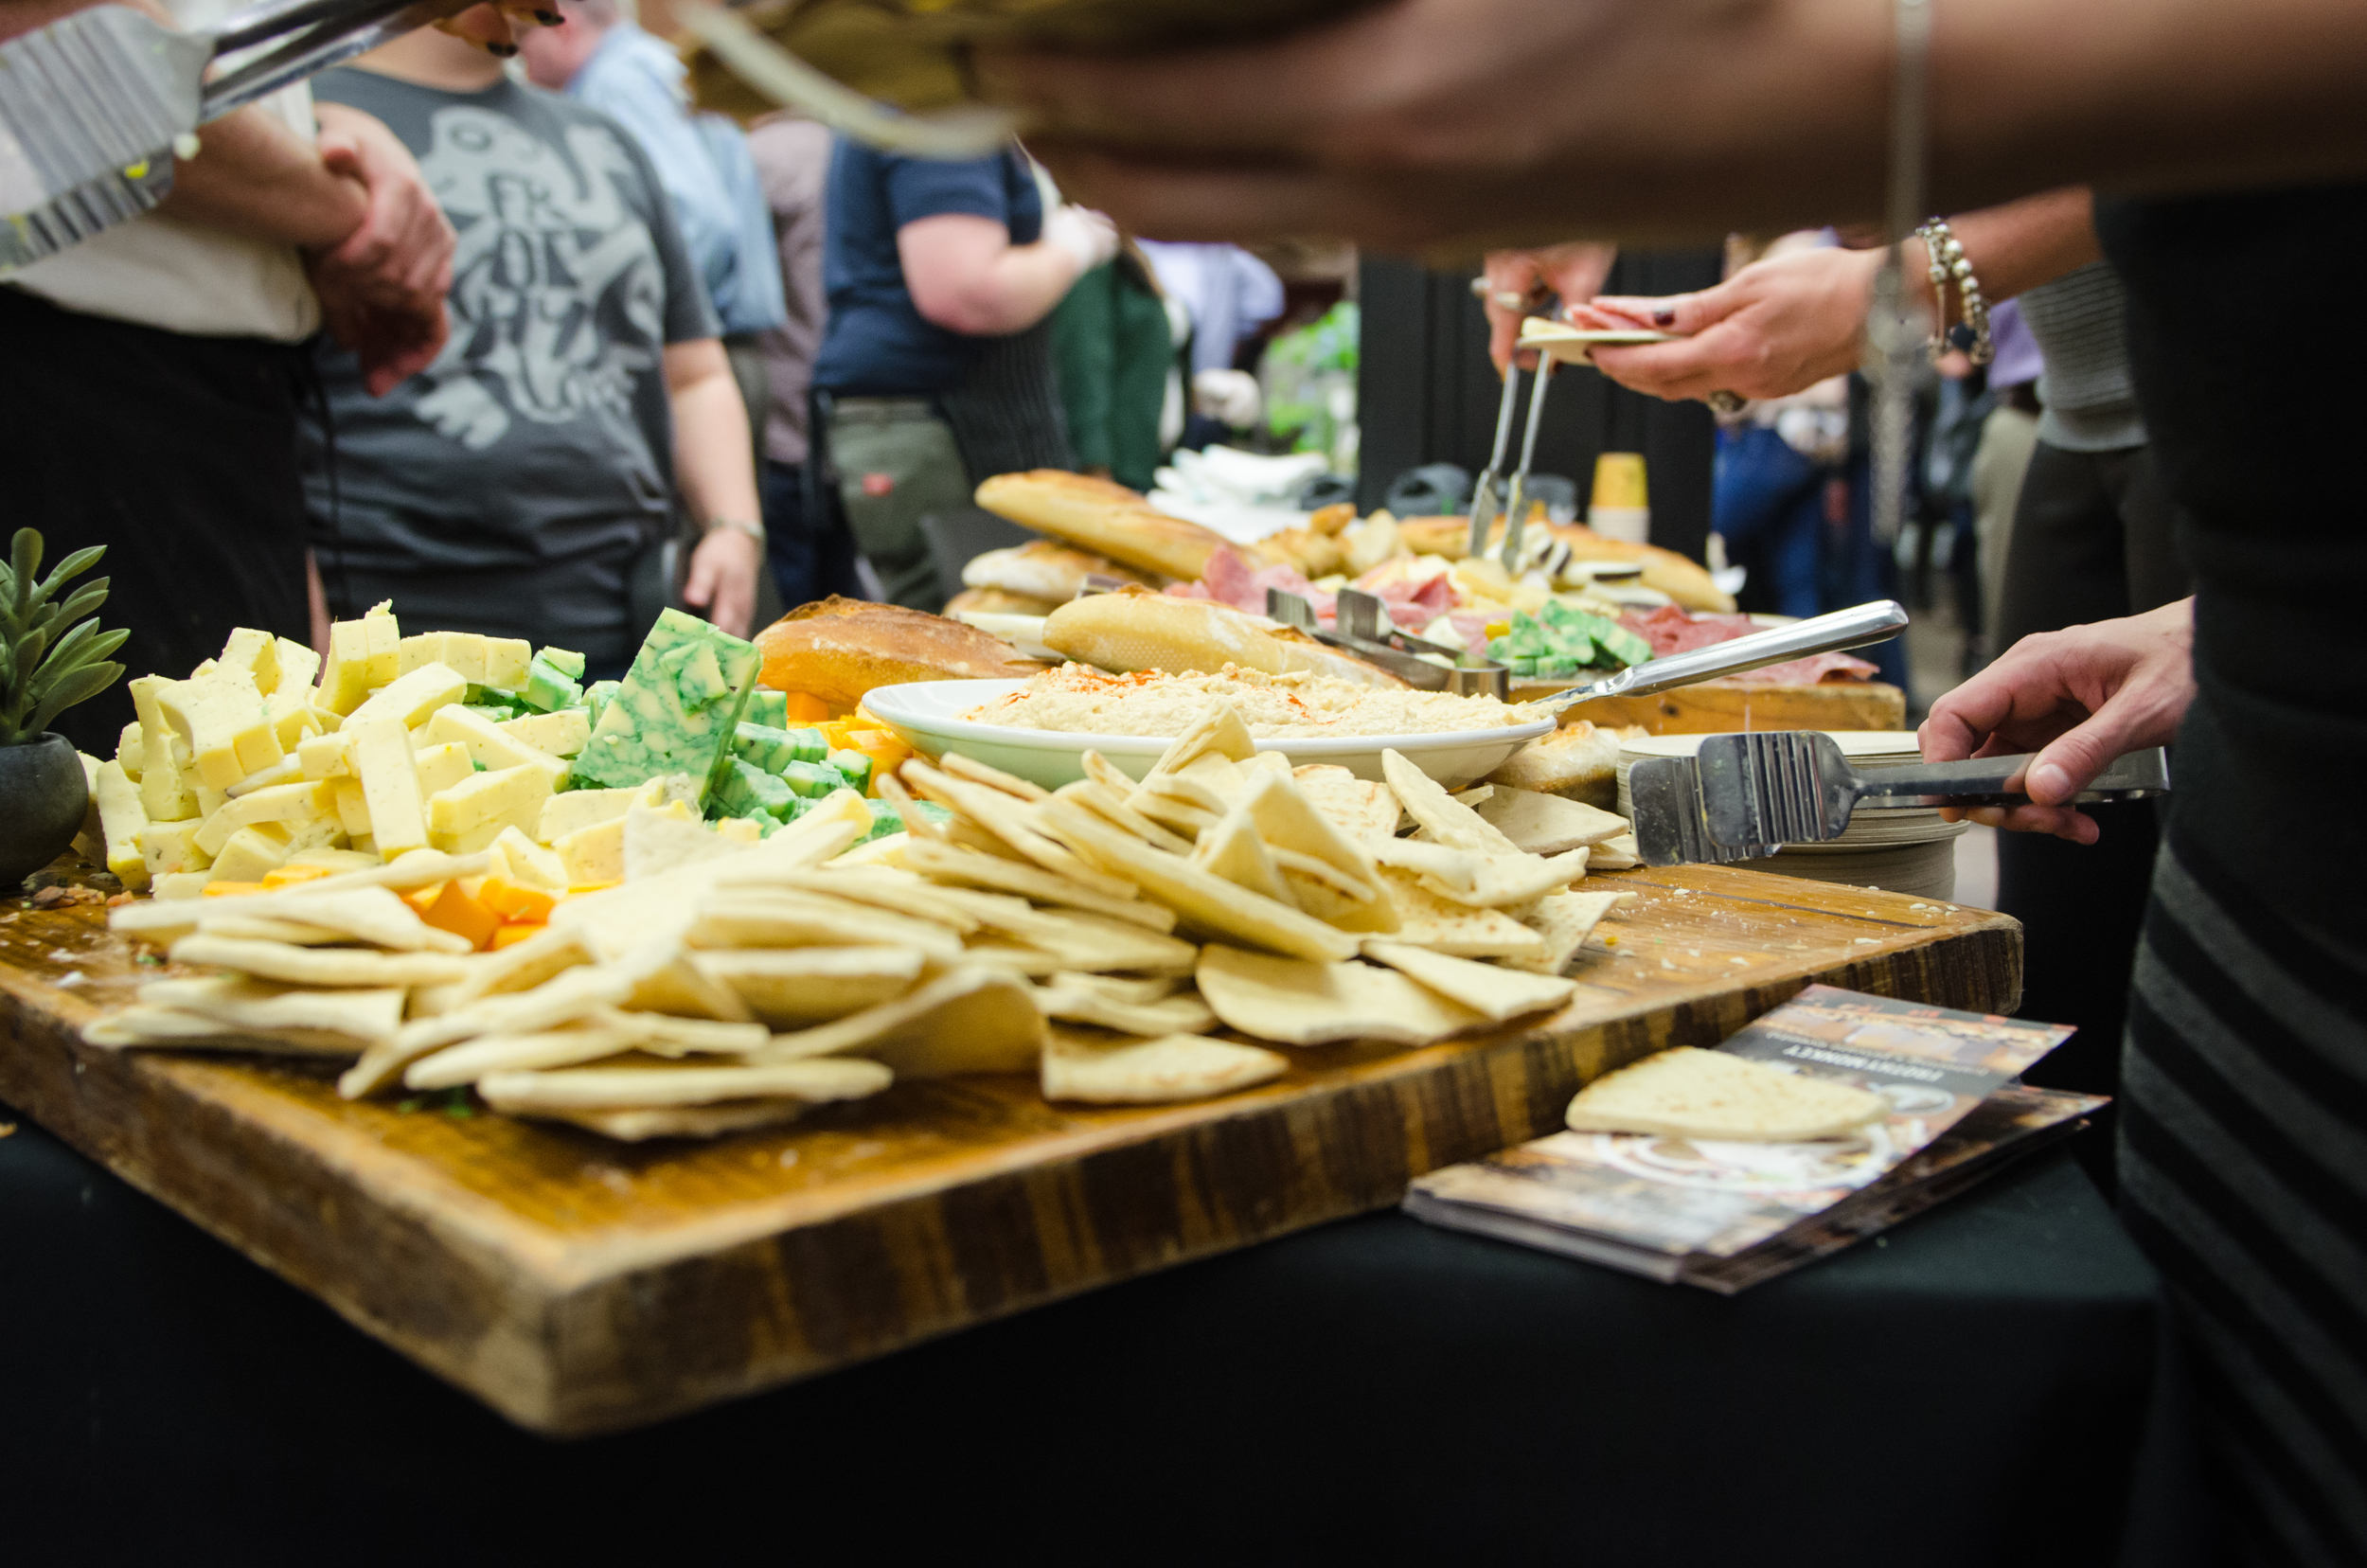 Frothy Monkey invites their visitors with a large cheese plate